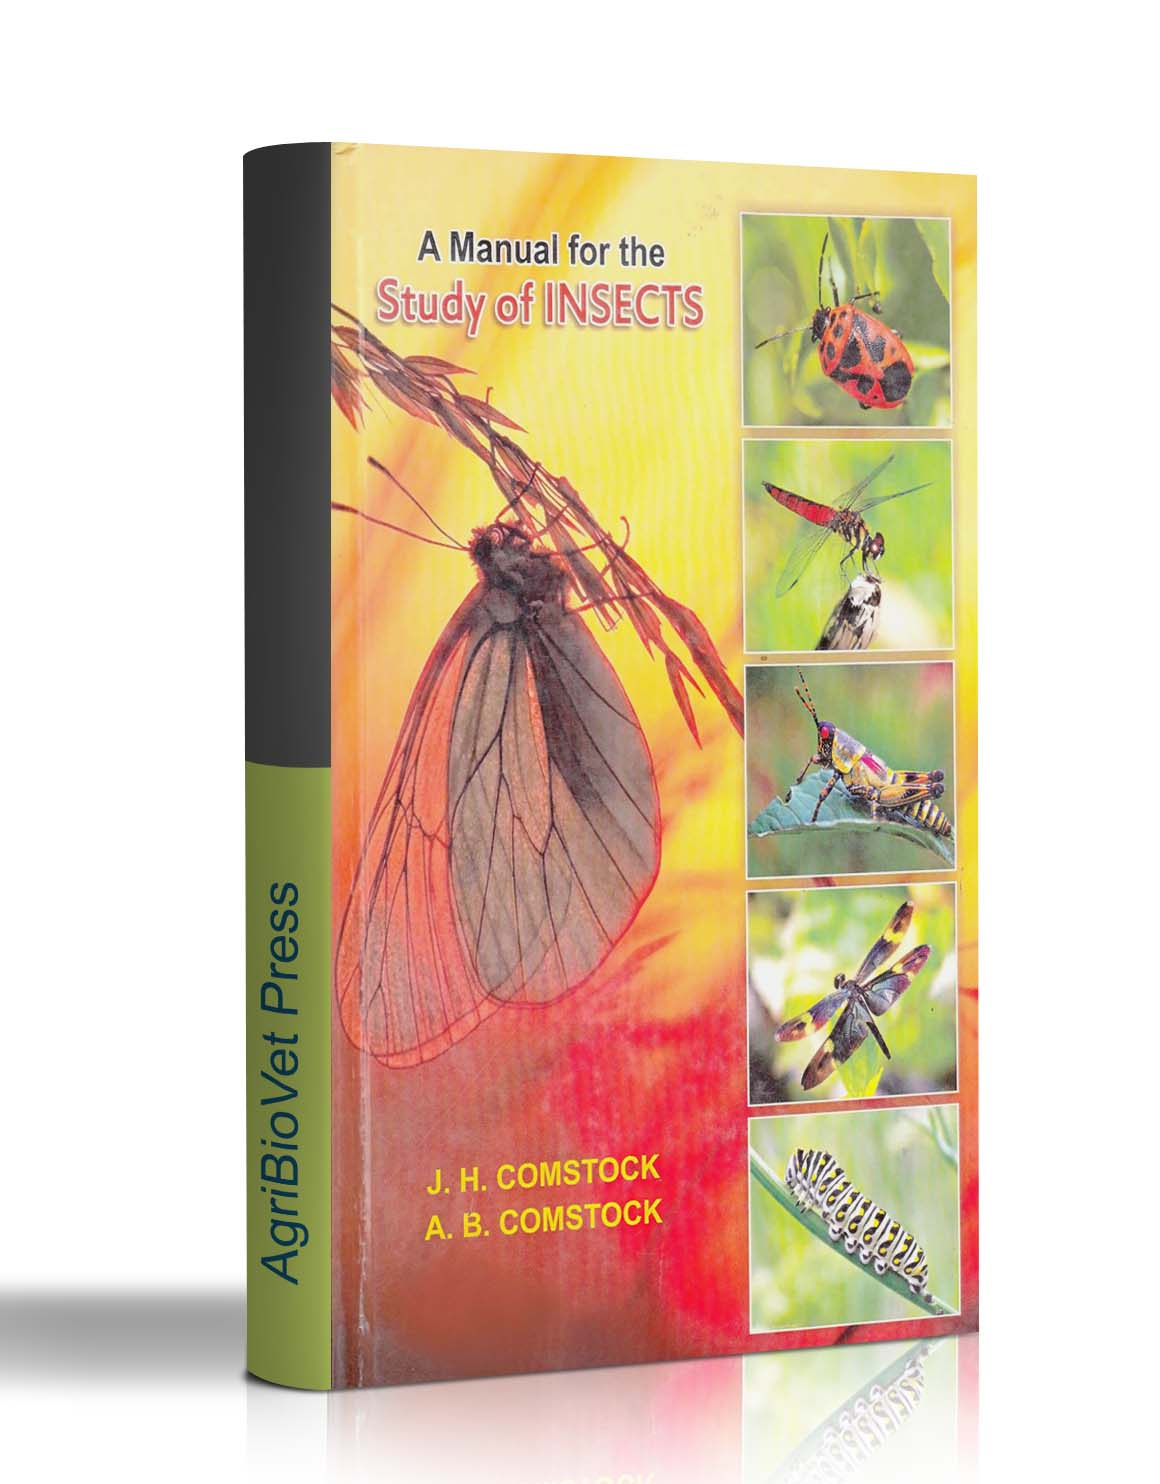 A Manual for the study insects by comstock